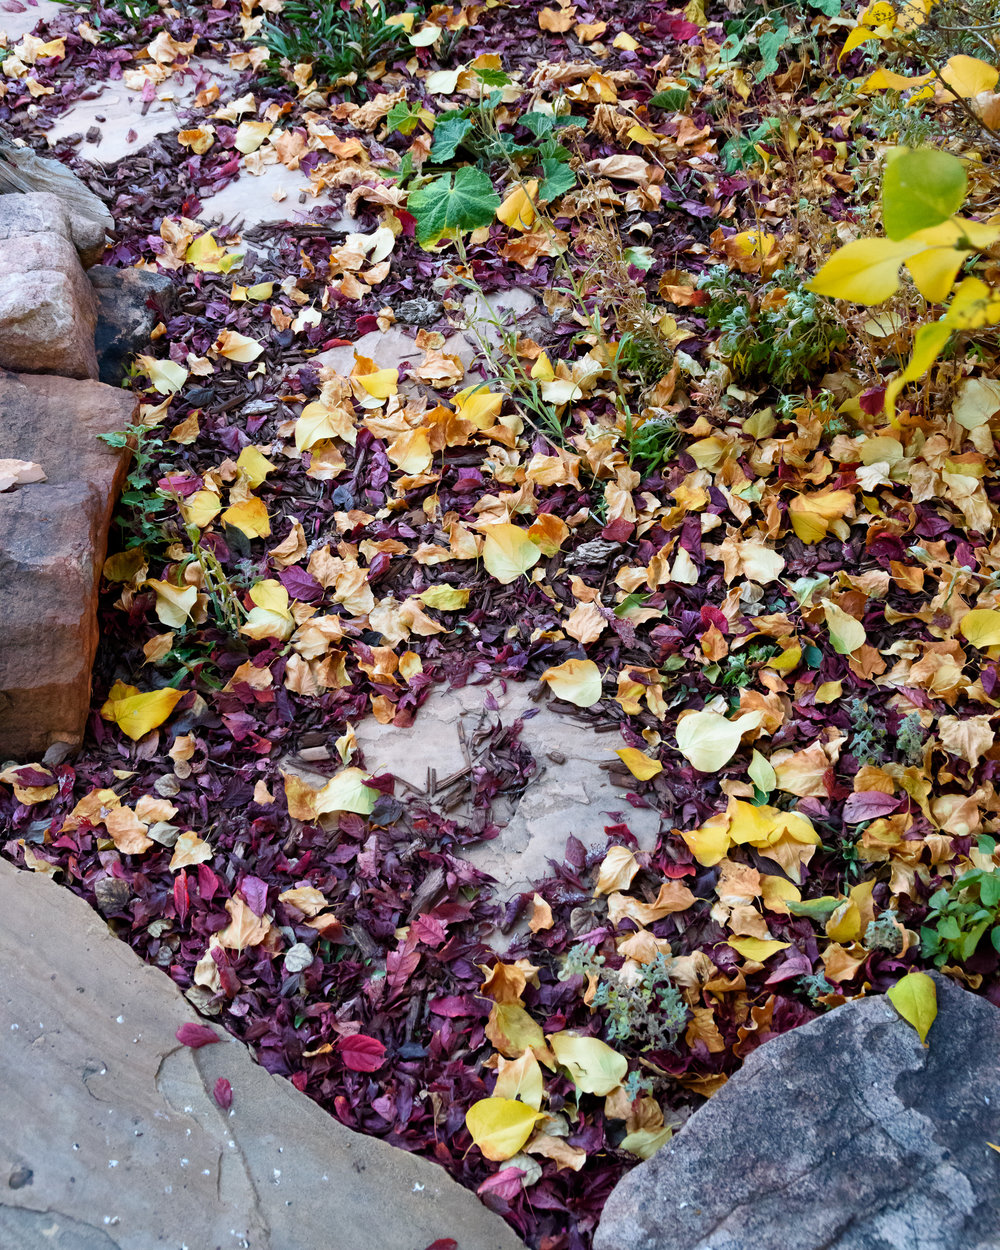 We don't get the majestic maples here in NM. So we content ourselves with plum and lilac leaves. We get to brush our feet through a walkway about 4' long. If you walk back and forth, eyes closed, you can pretend you're back East under the towering maples ...